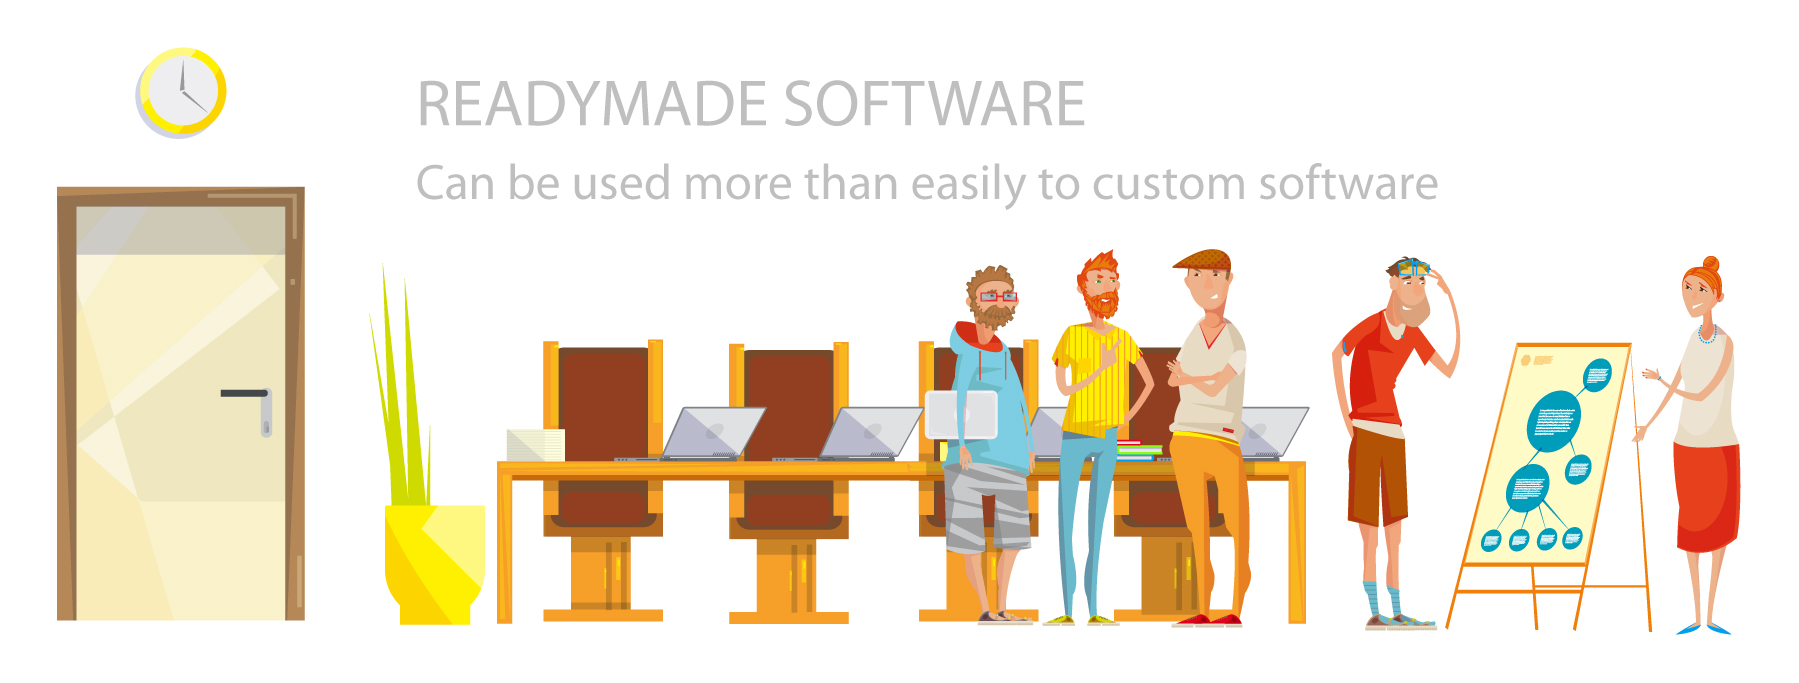 readymade-software